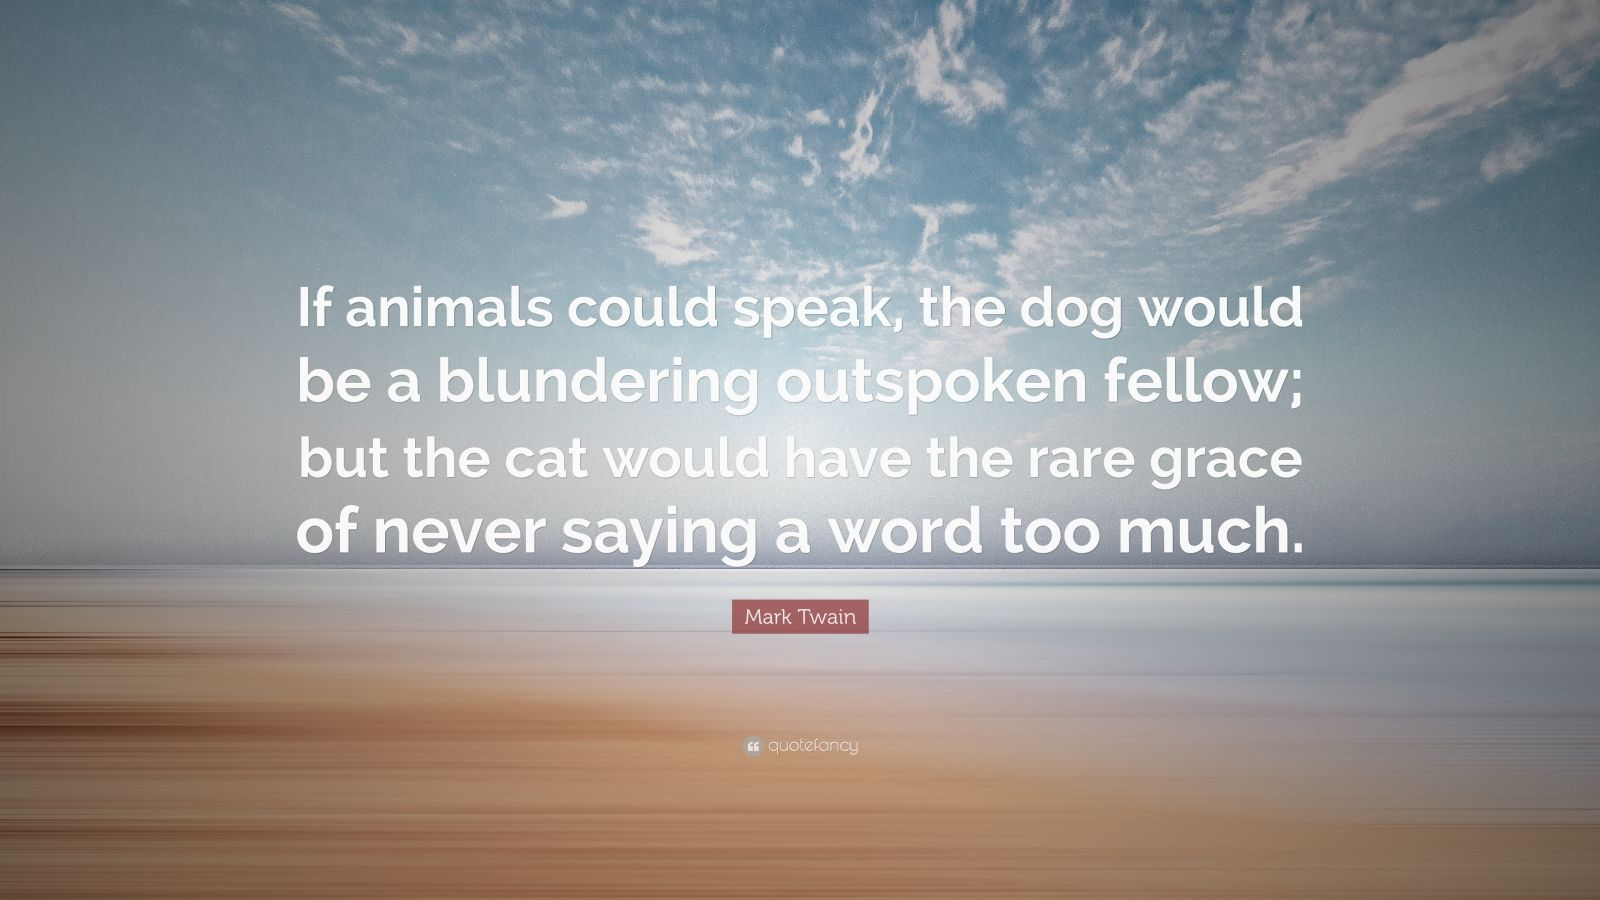 """Mark Twain Quote: """"If animals could speak, the dog would be a blundering outspoken fellow; but the cat would have the rare grace of never saying a word too much."""""""